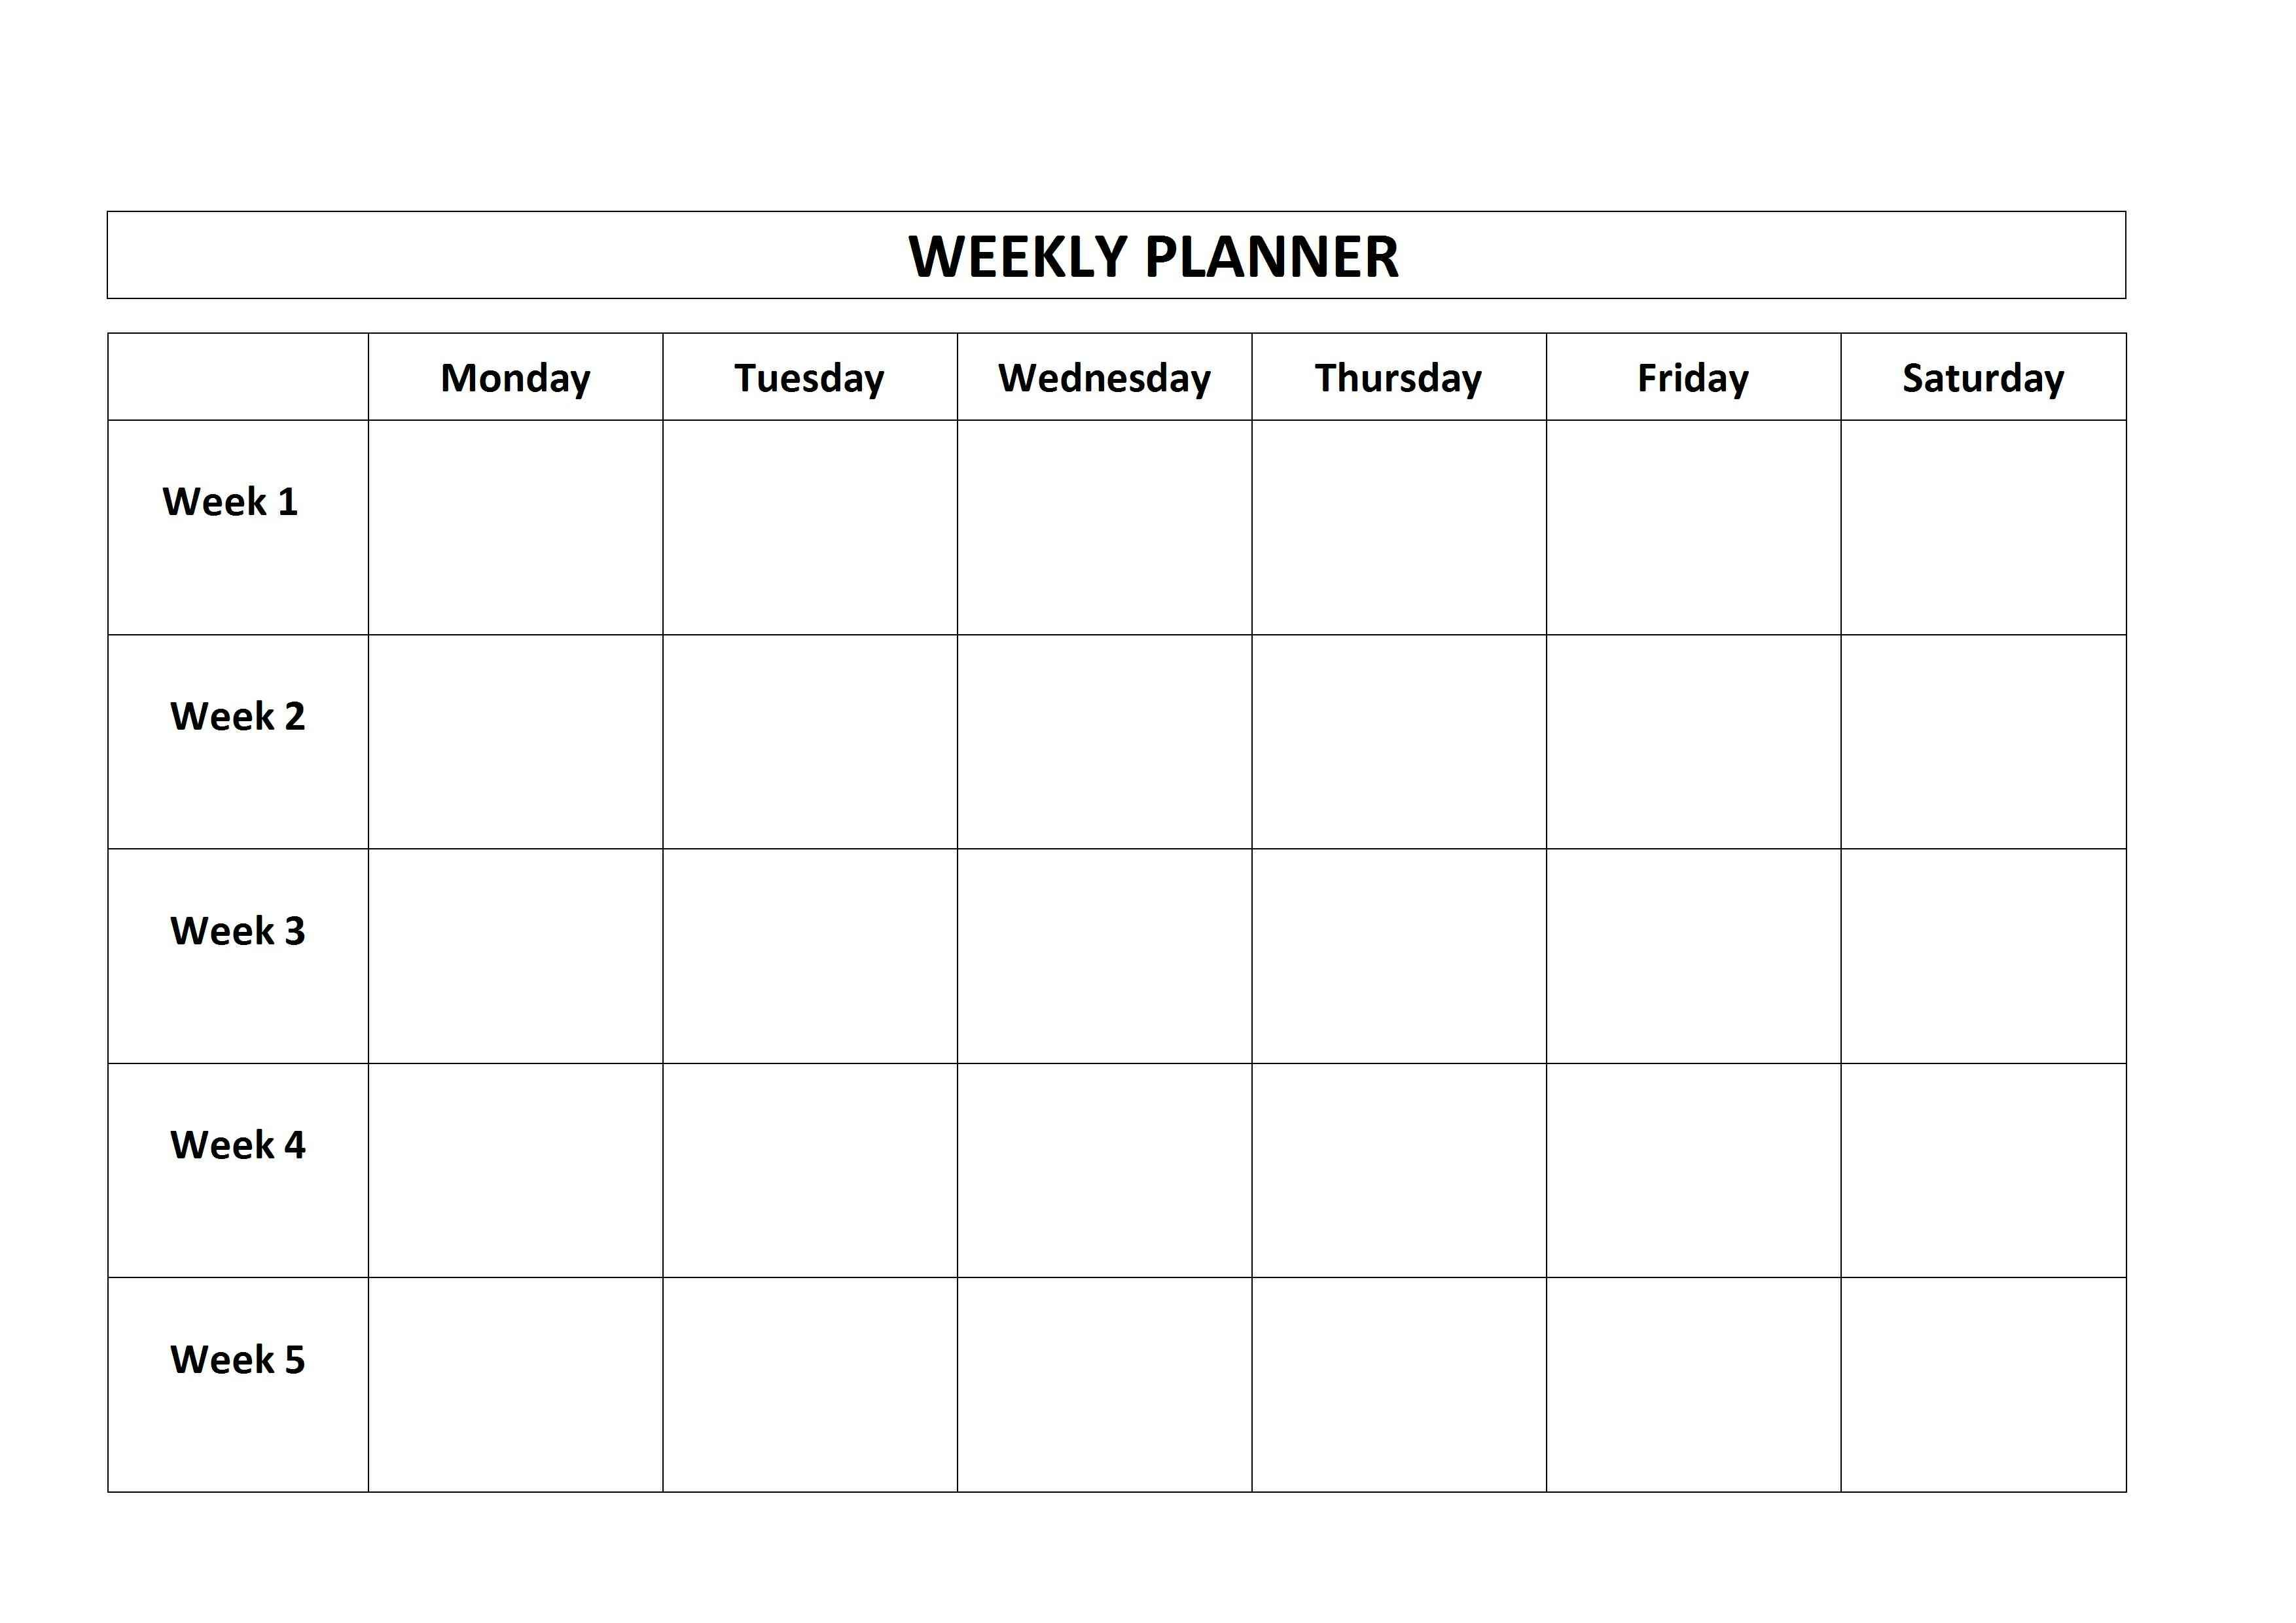 Free Printable Weekly Planner Monday Friday School Calendar On within Blank Calendar Template Monday Friday